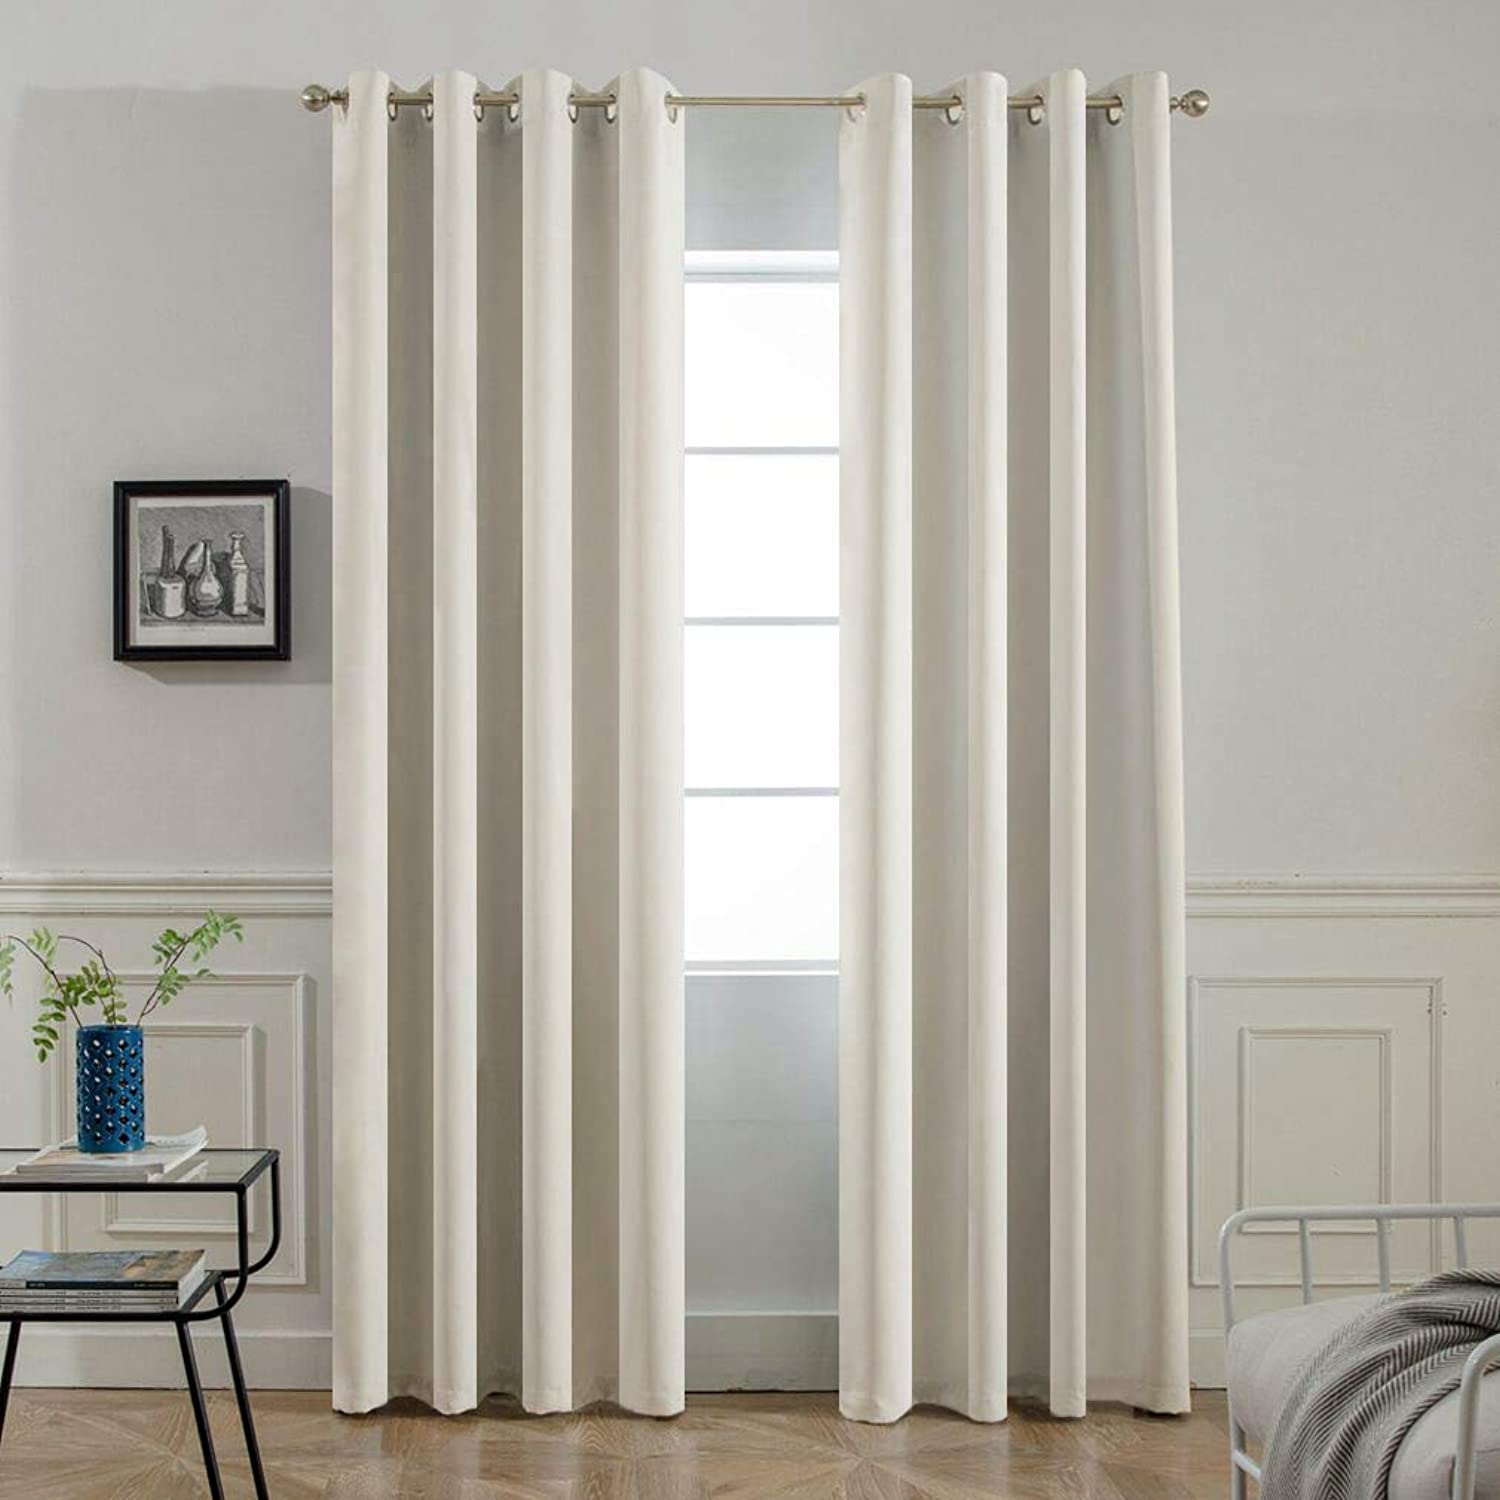 Yakamok Room Darkening Thermal Insulated Light Reducing Blackout Curtains for Living Room,2 tie Backs Included (52Wx96L, Light Beige, 2 Panels)